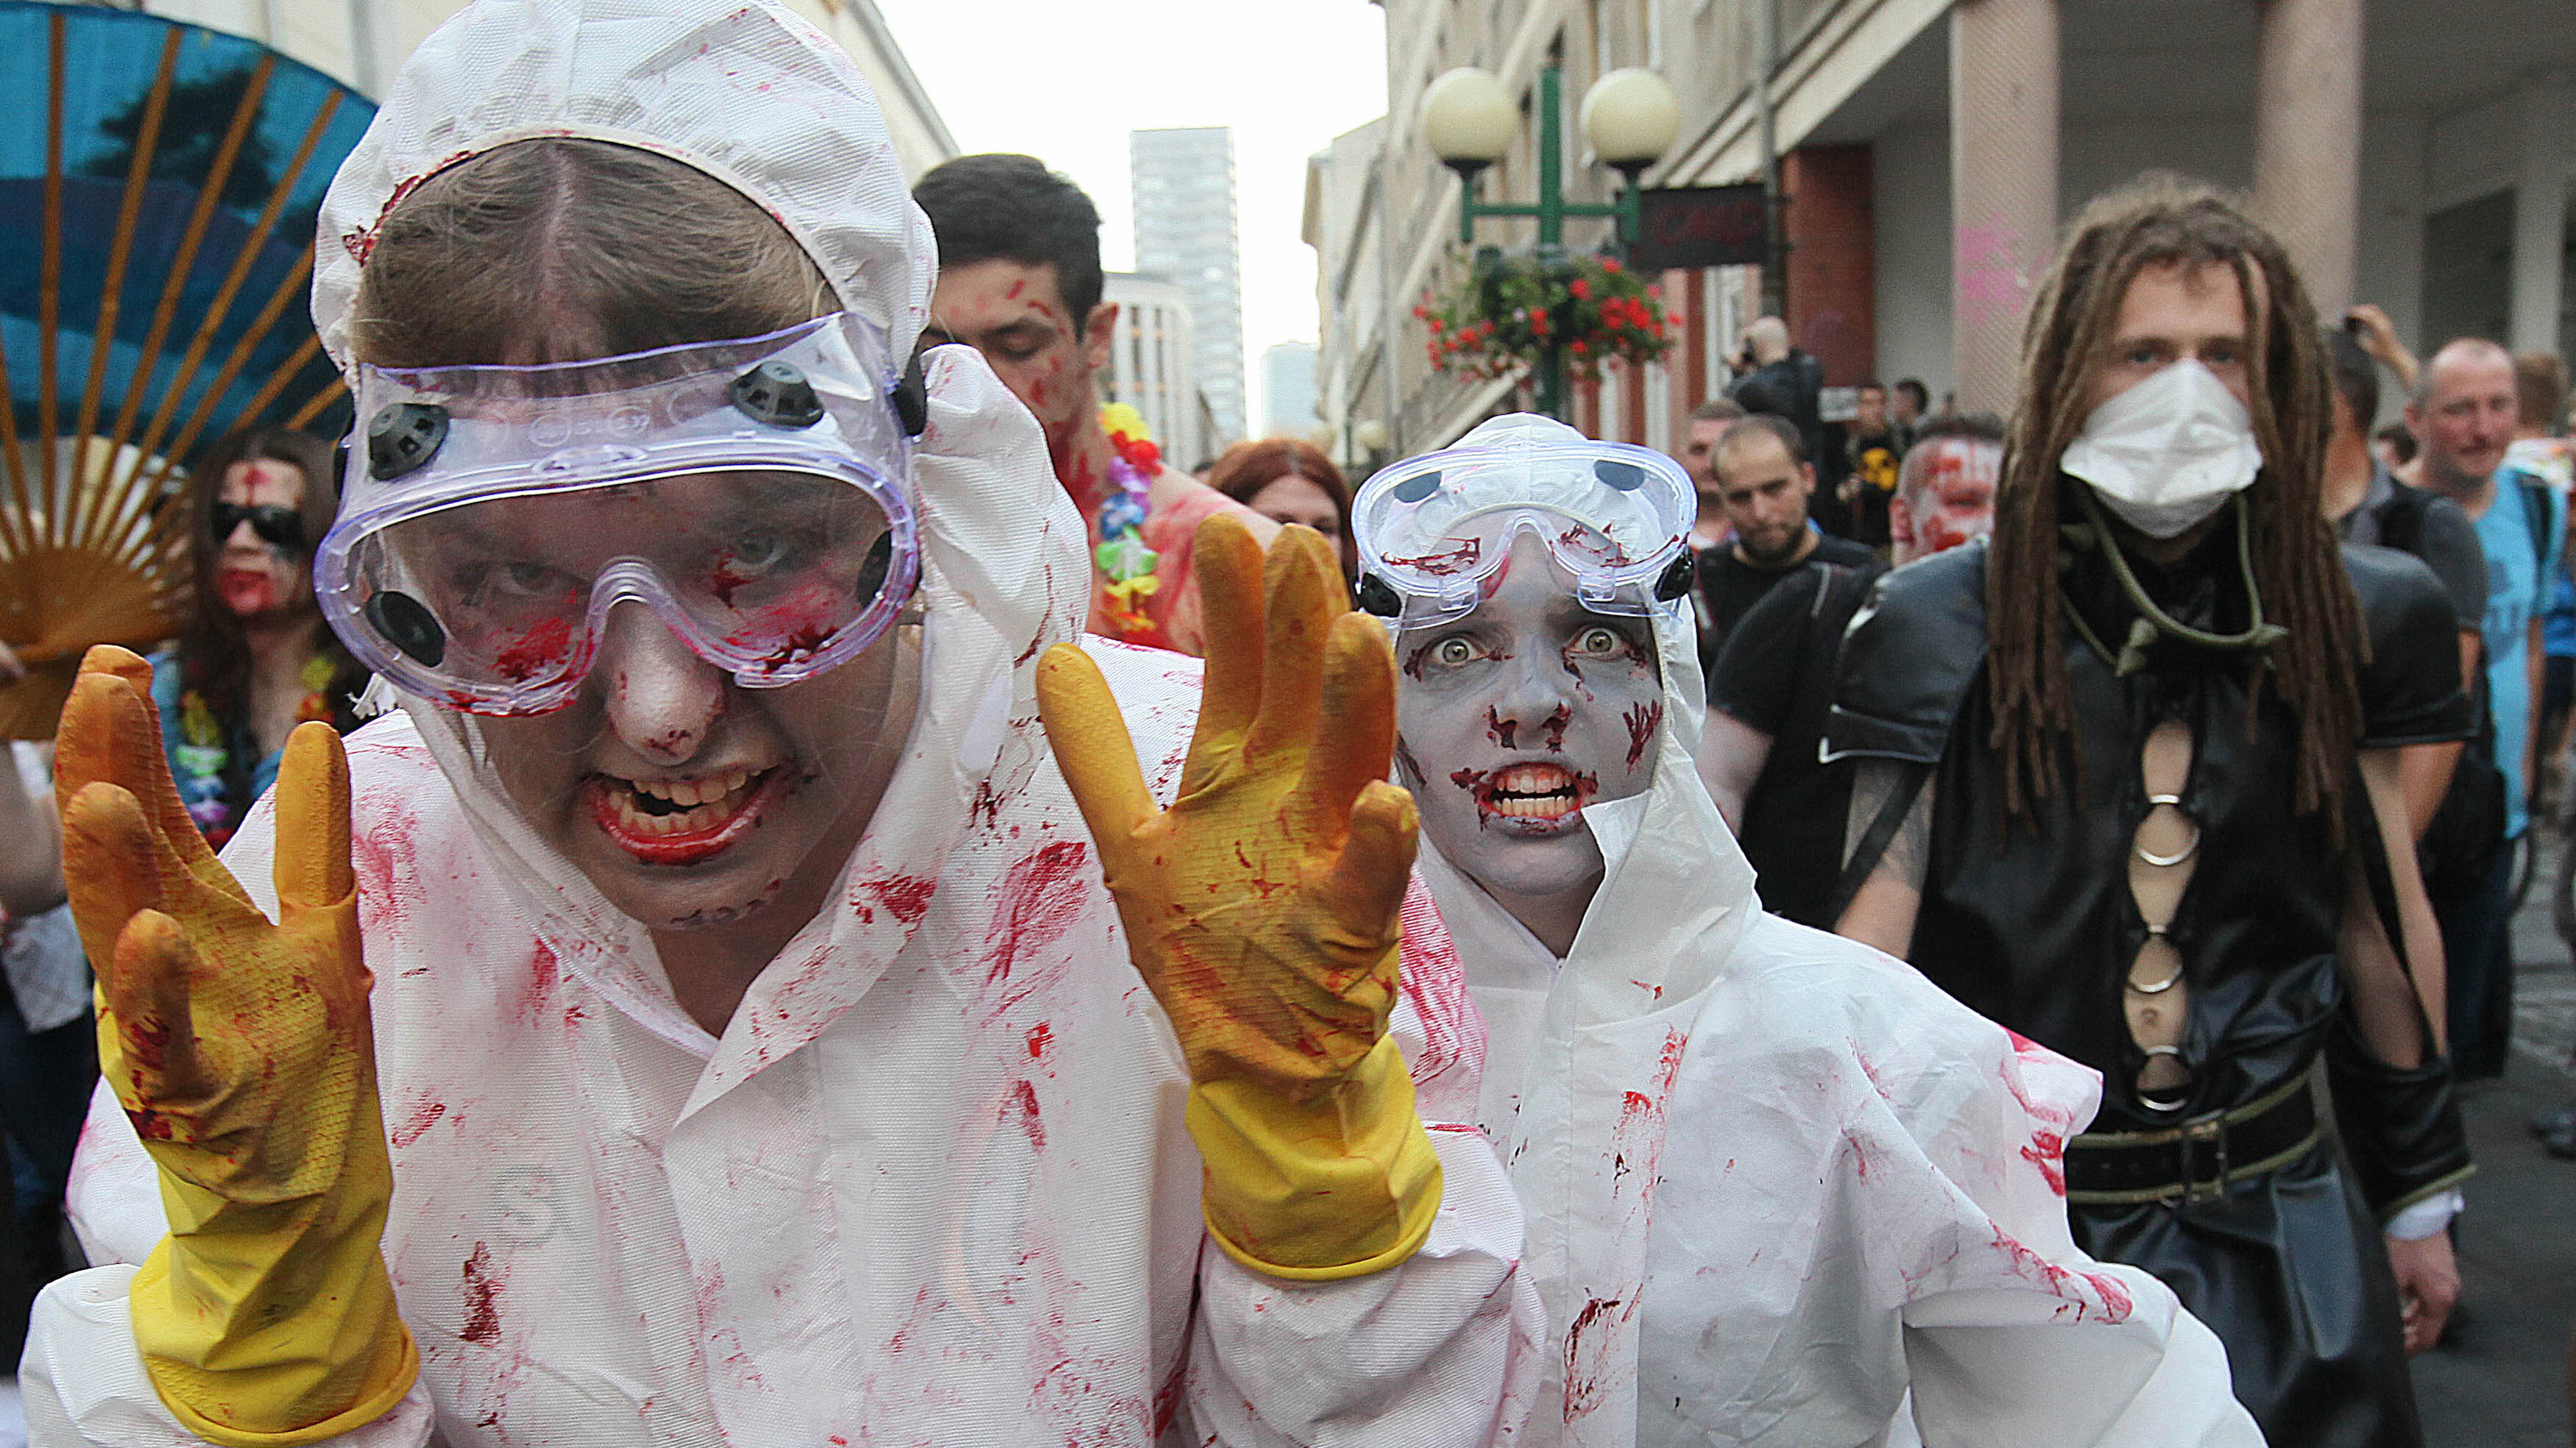 Zombies Eating People Alive